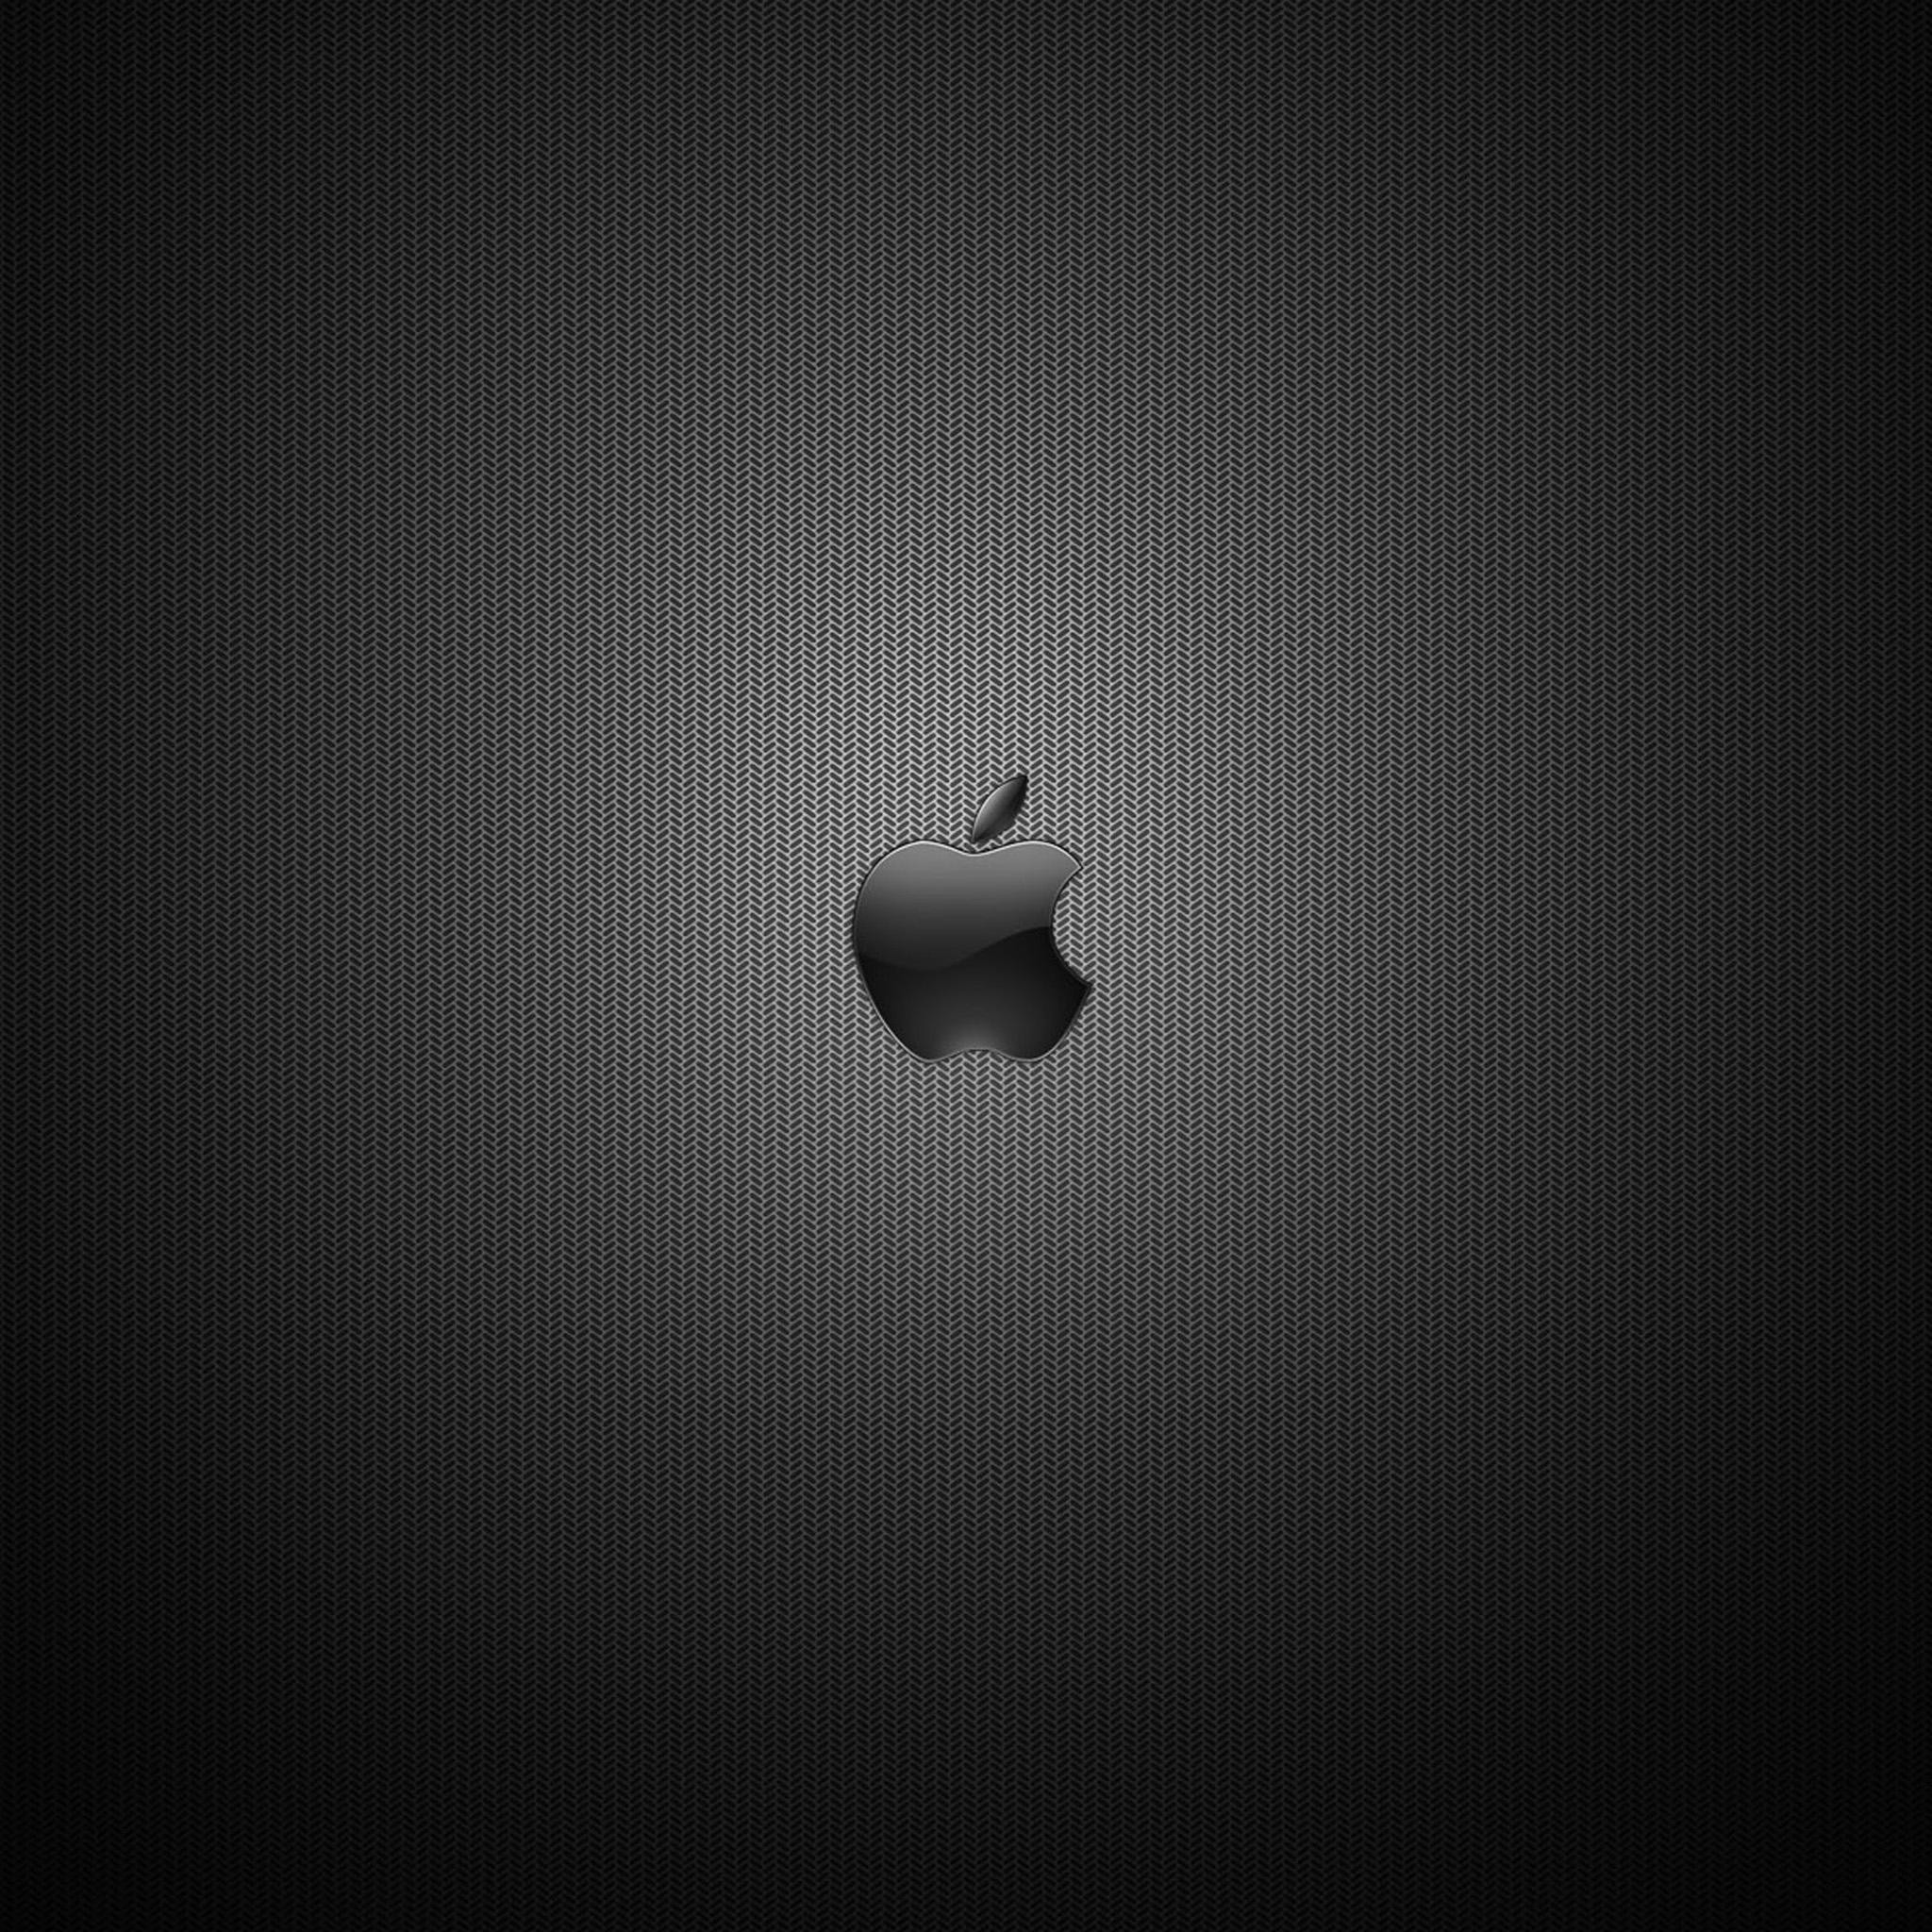 Res: 2048x2048, metal apple ipad wallpapers hd background wallpapers free cool .